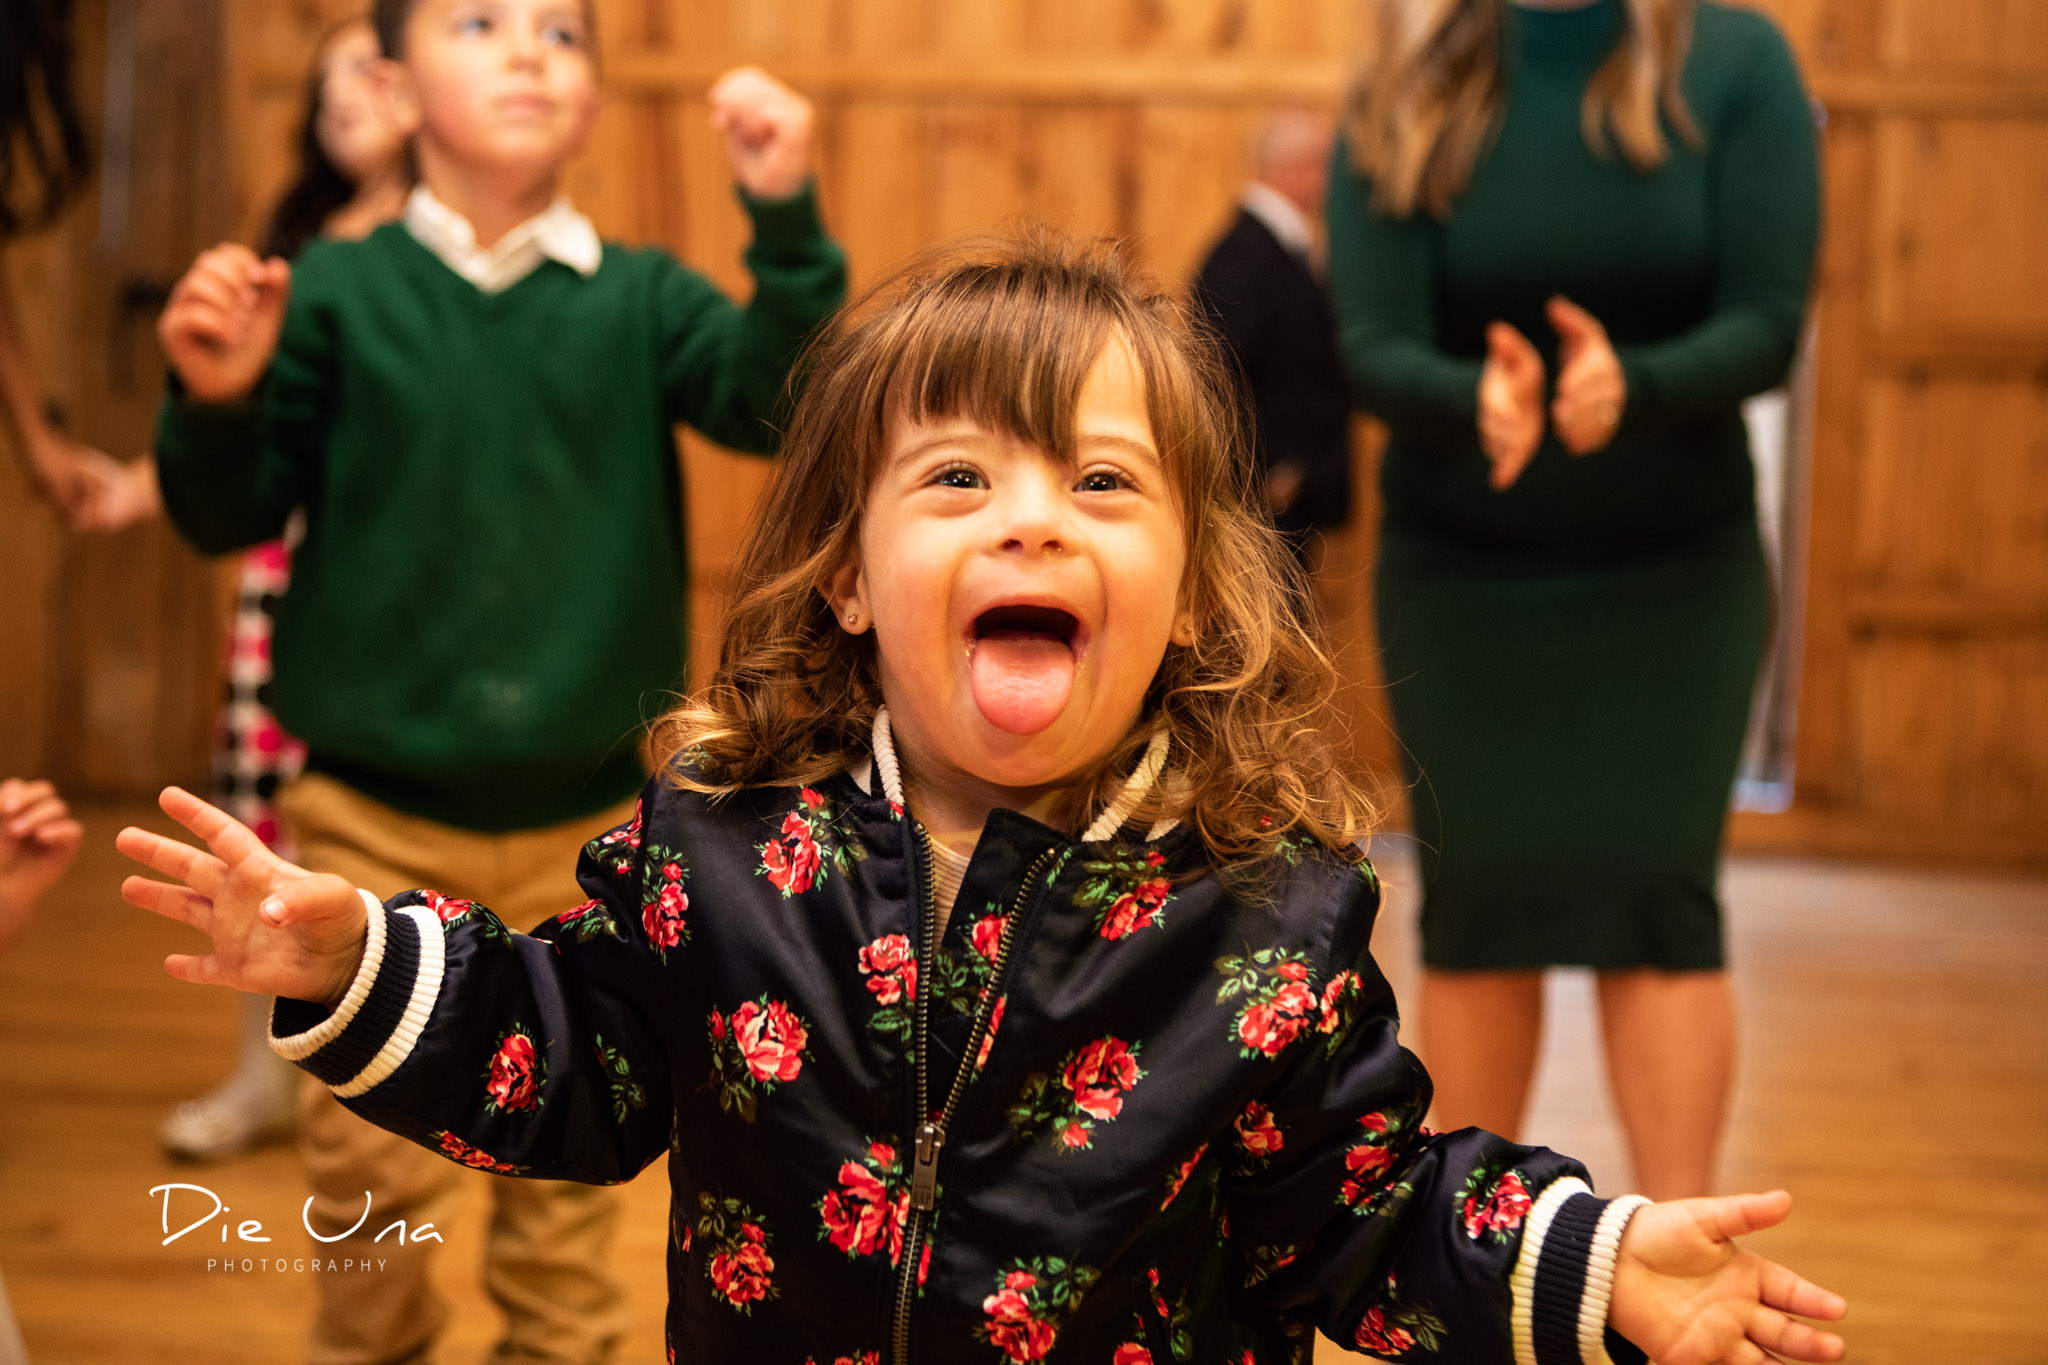 tiny human dancing during wedding reception in a barn kitchener wedding photographer.jpg